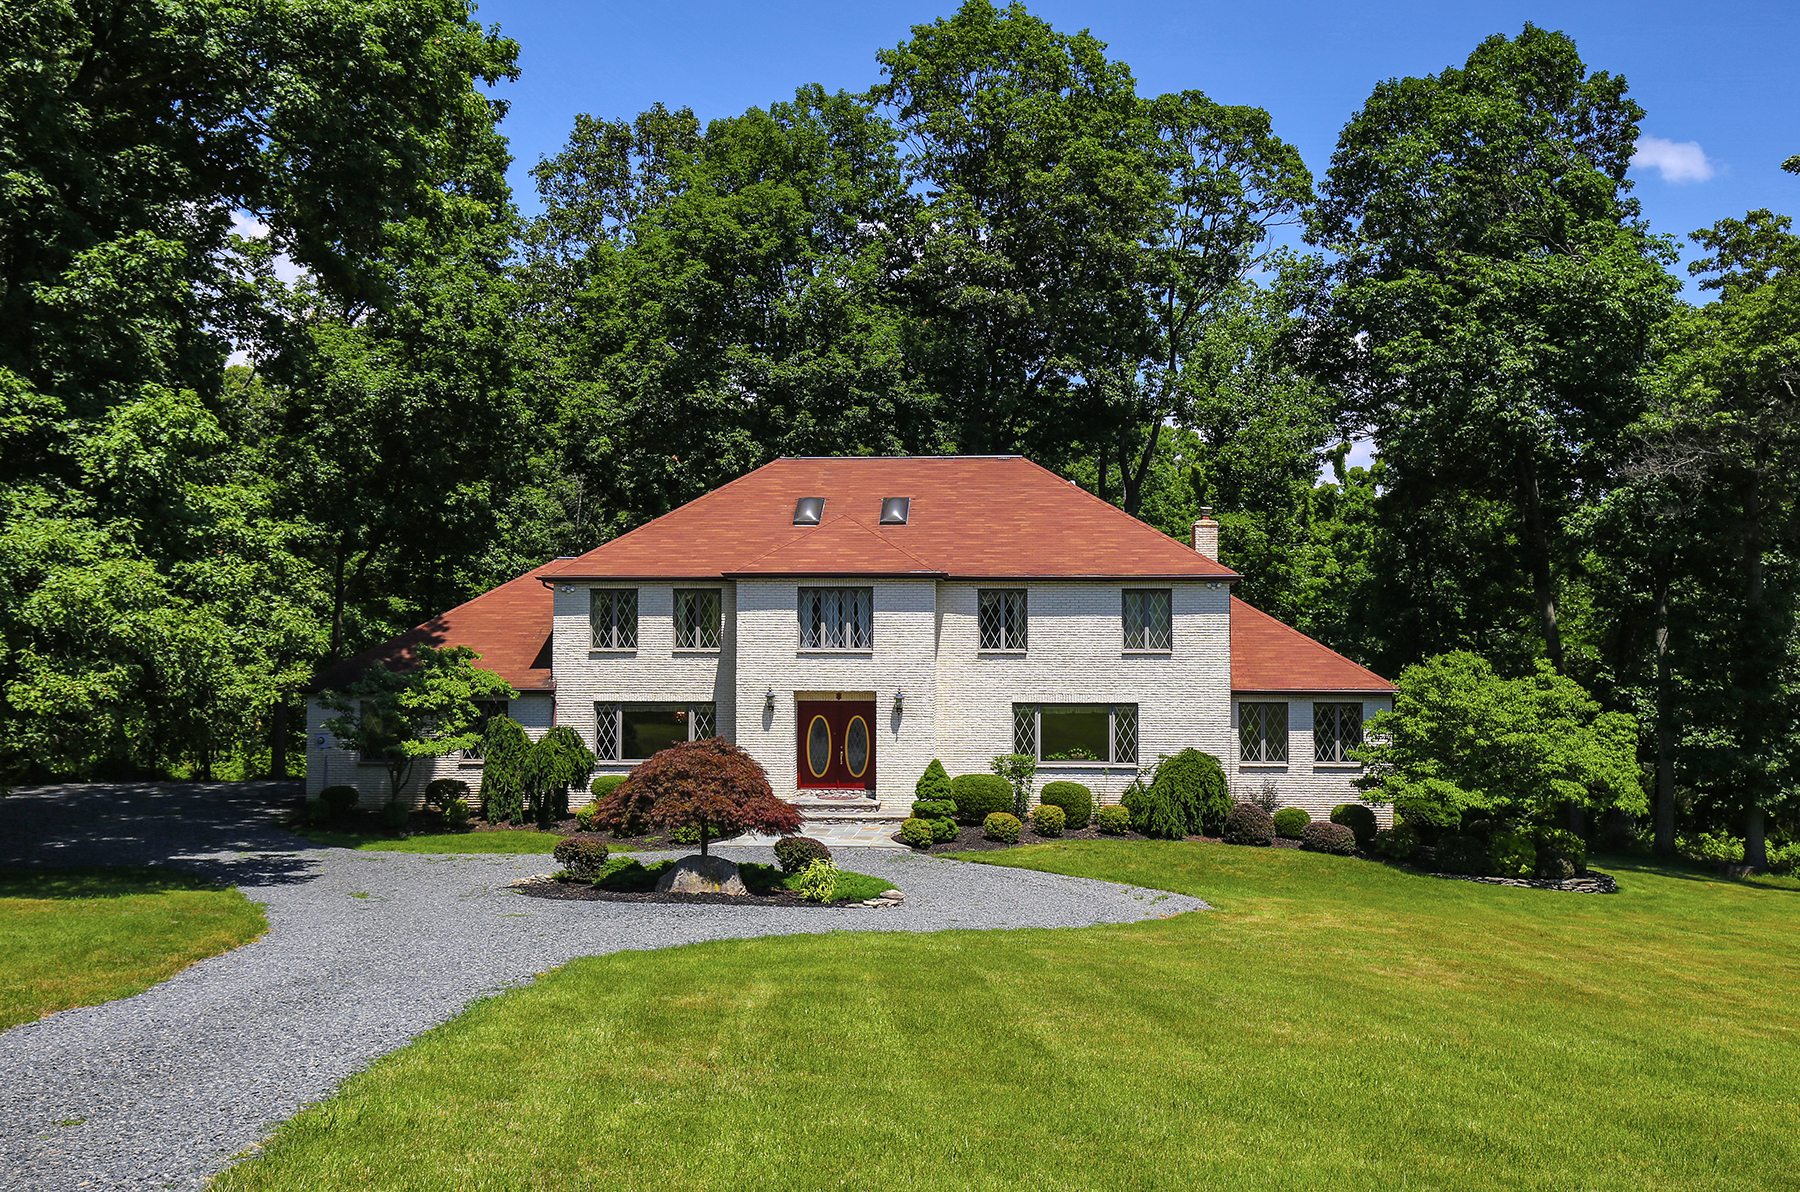 Single Family Home for Sale at Gracious Colonial 67-2 Ballantine Road Bernardsville, New Jersey 07924 United States